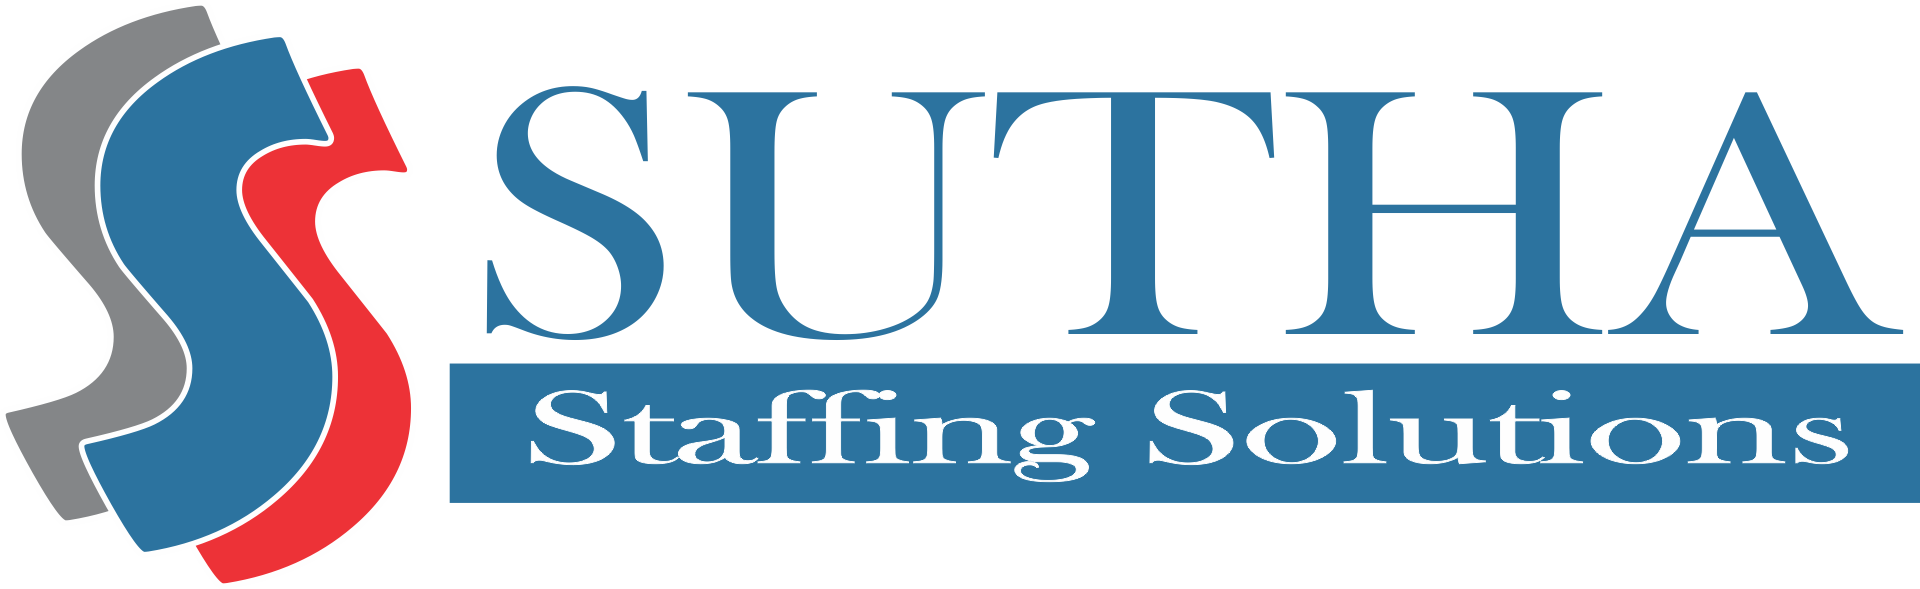 Sutha Staffing Solutions